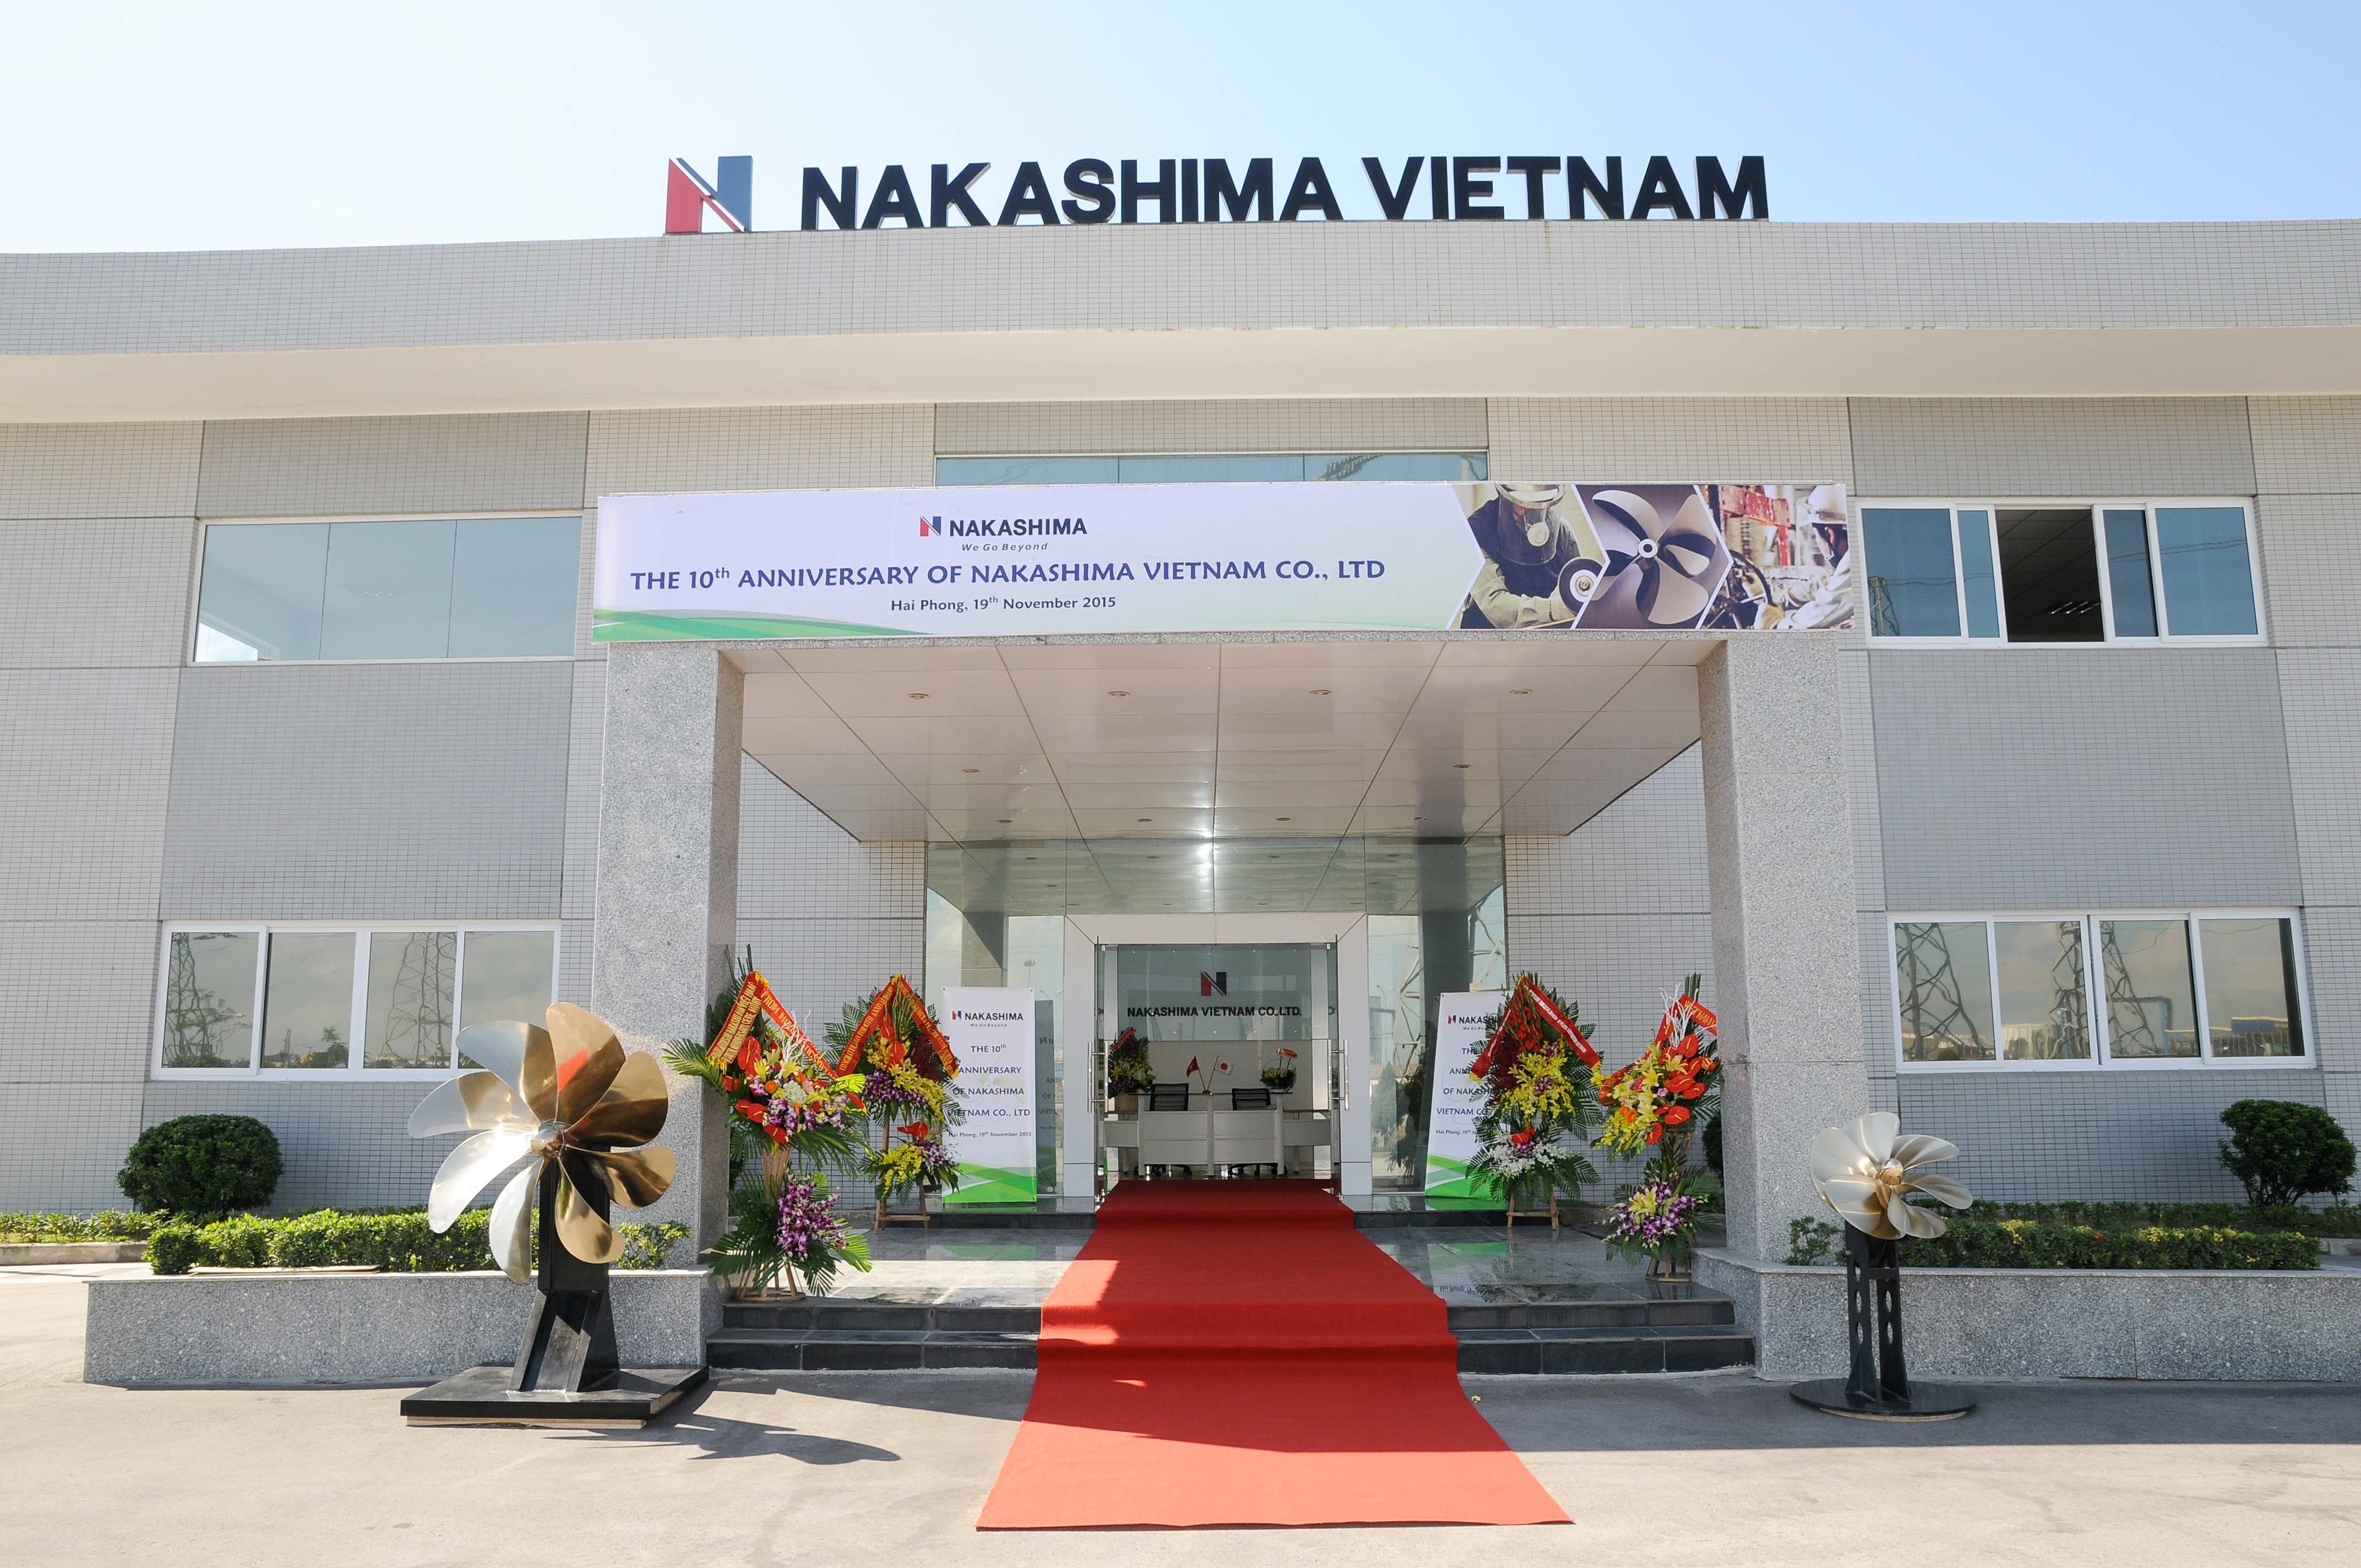 10th Anniversary of Nakashima Vietnam Co., Ltd (2005-2015)